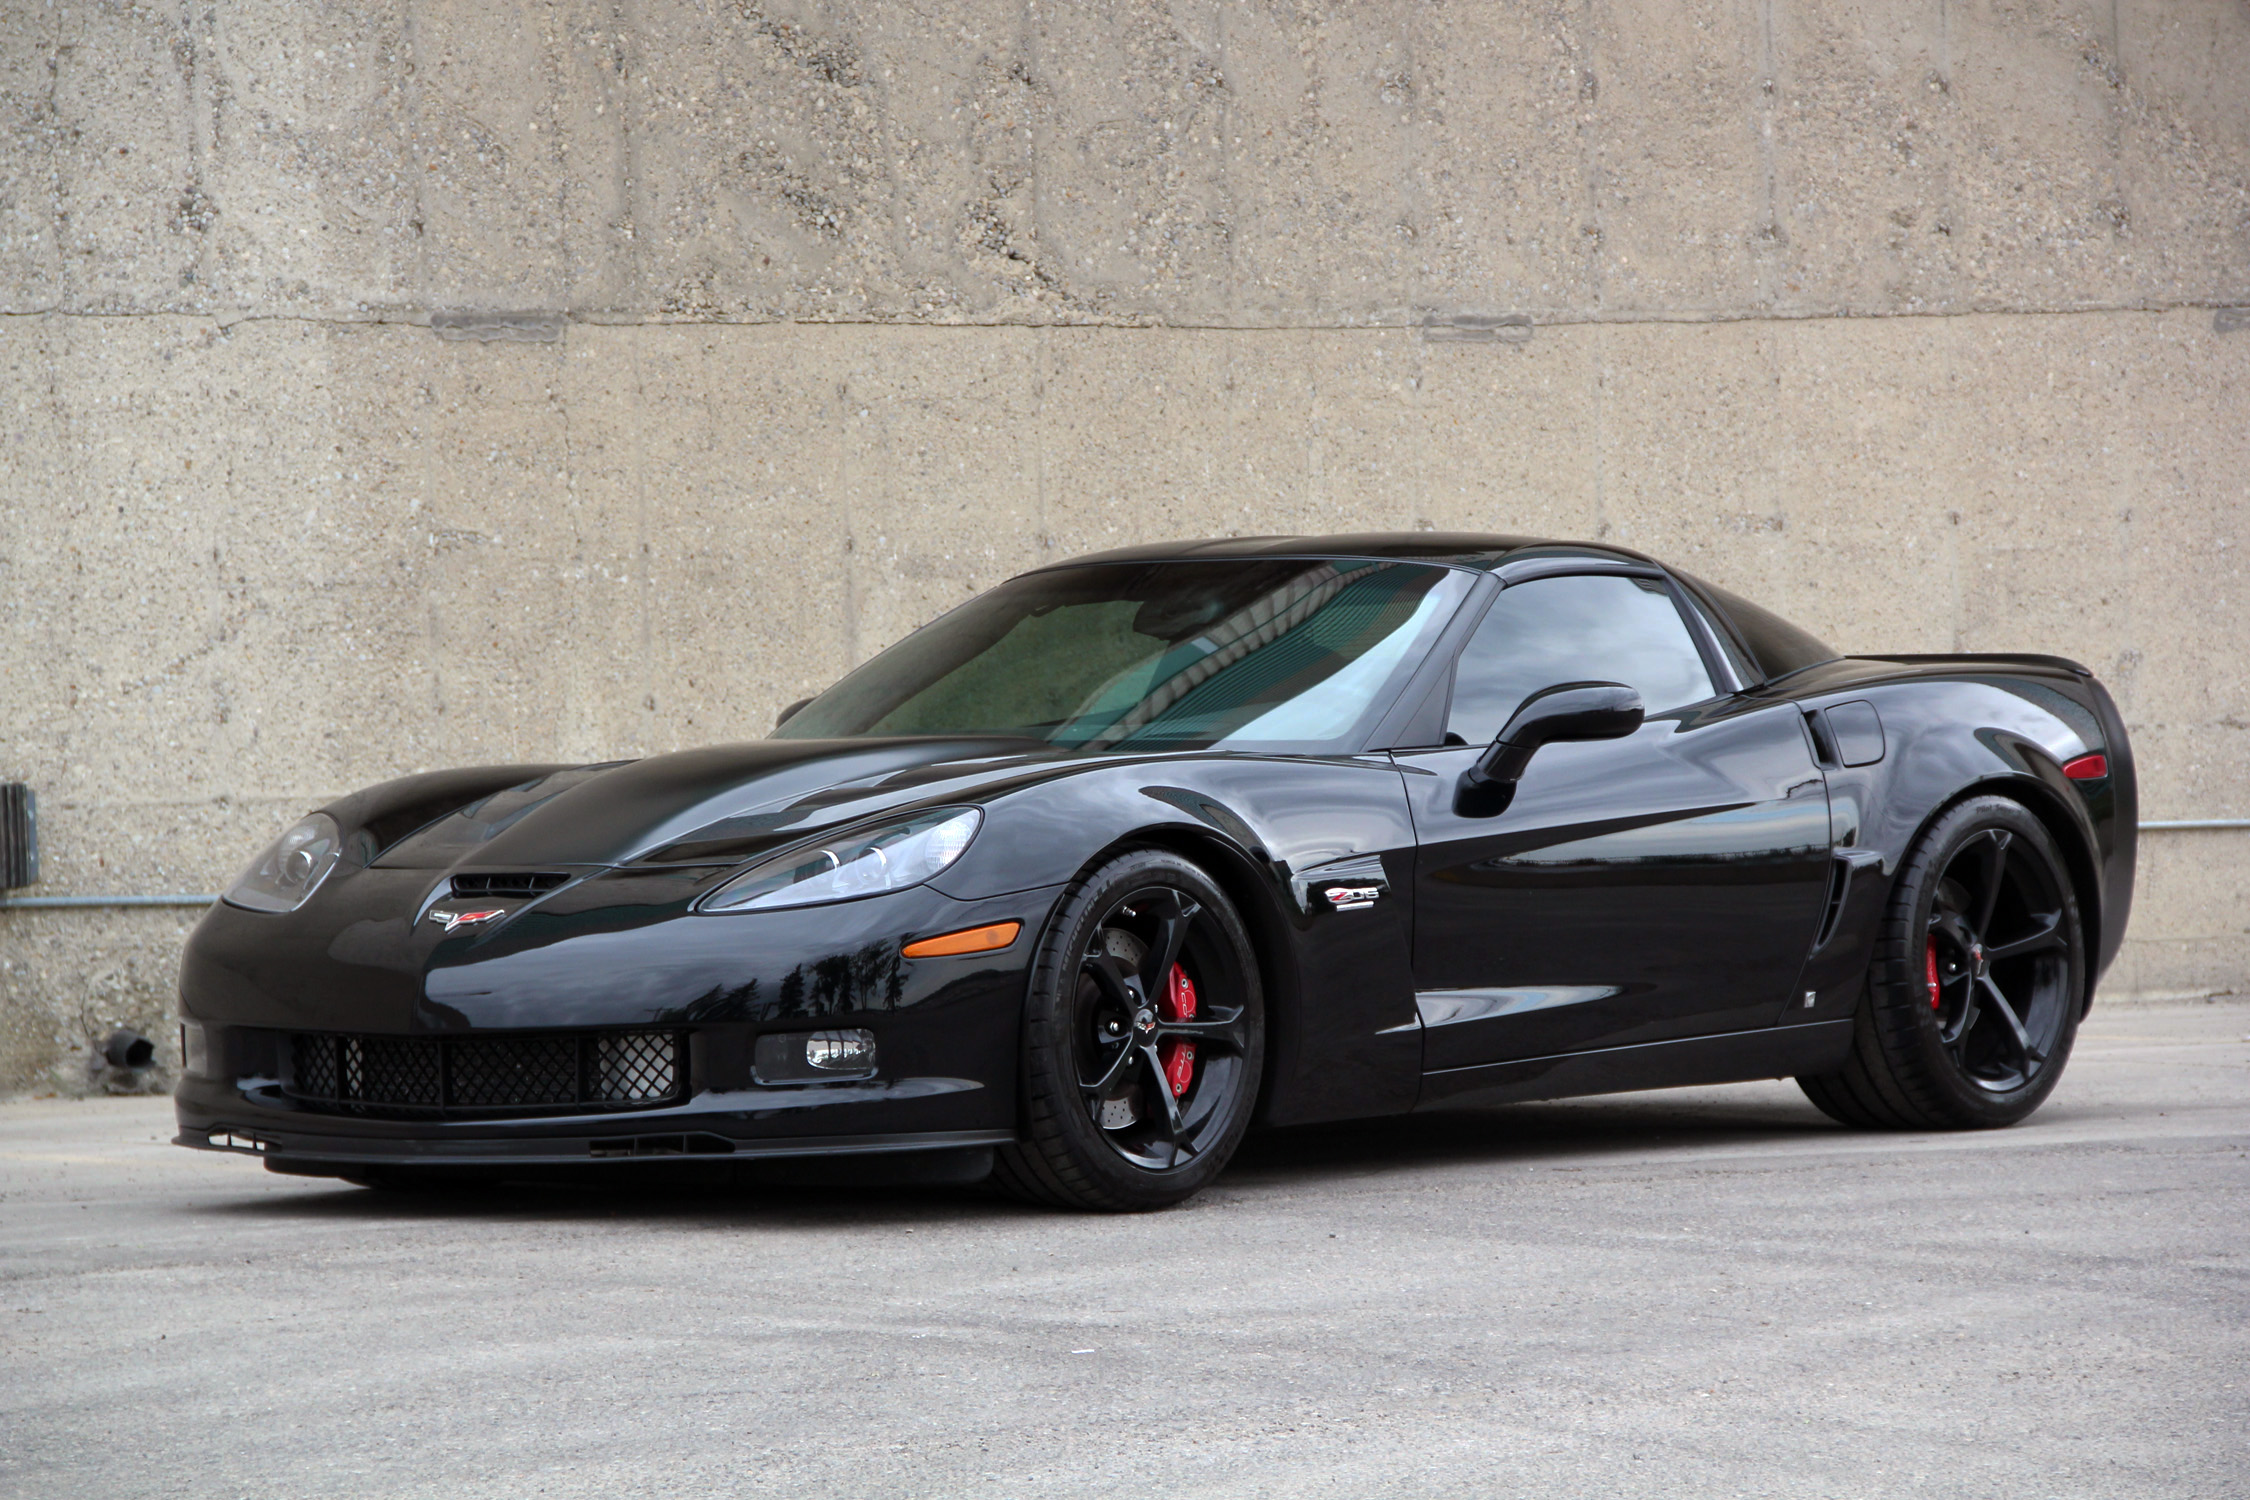 2009 Corvette Z06 Supercharged The Beast Envision Auto